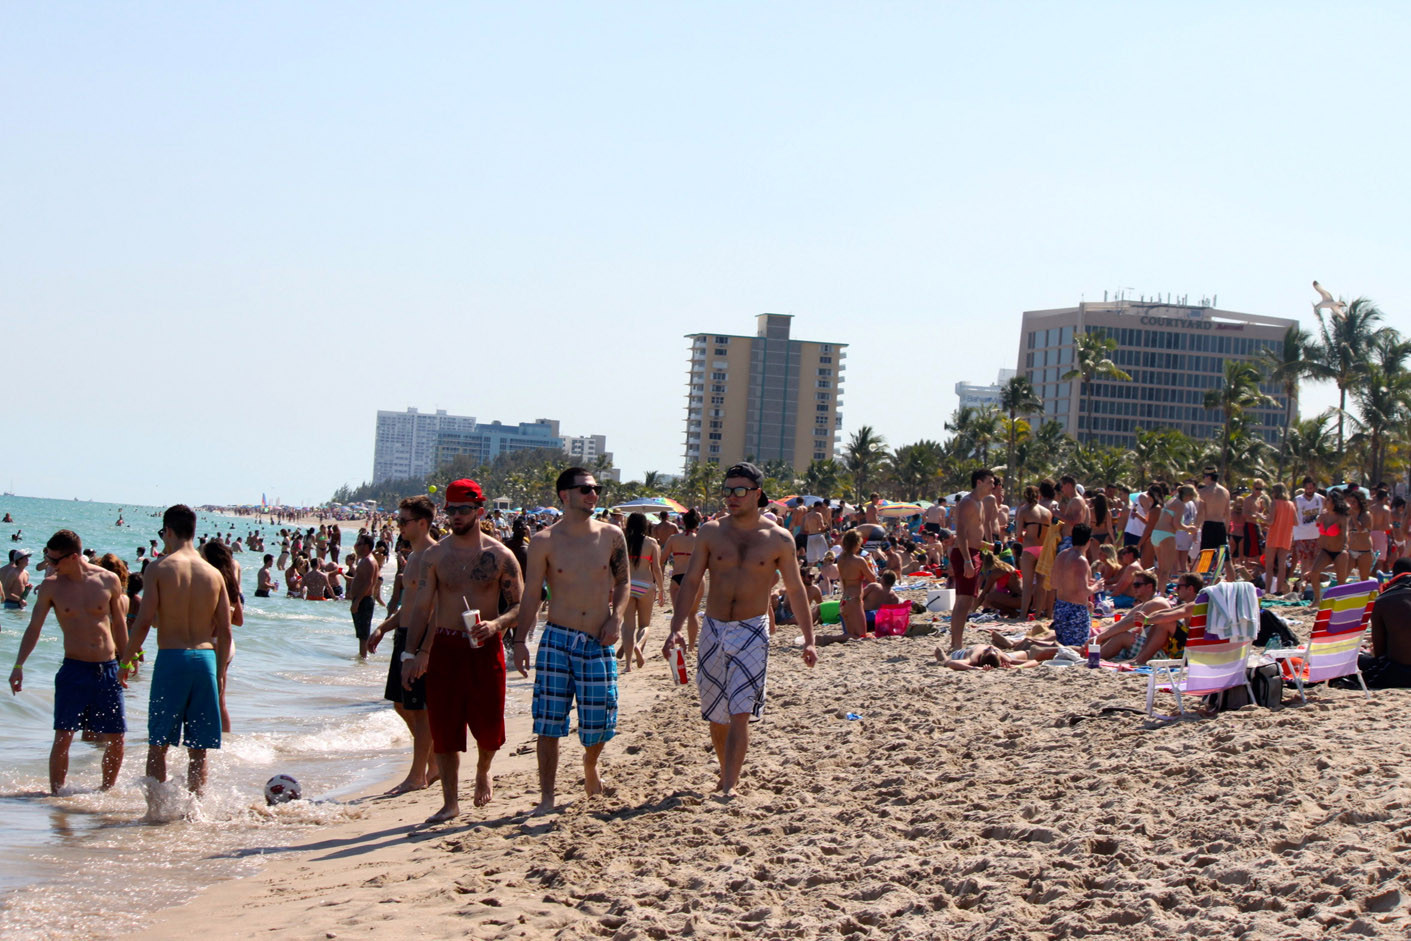 Photos: Spring break in Fort Lauderdale - Spring Break Fort Lauderdale 2014